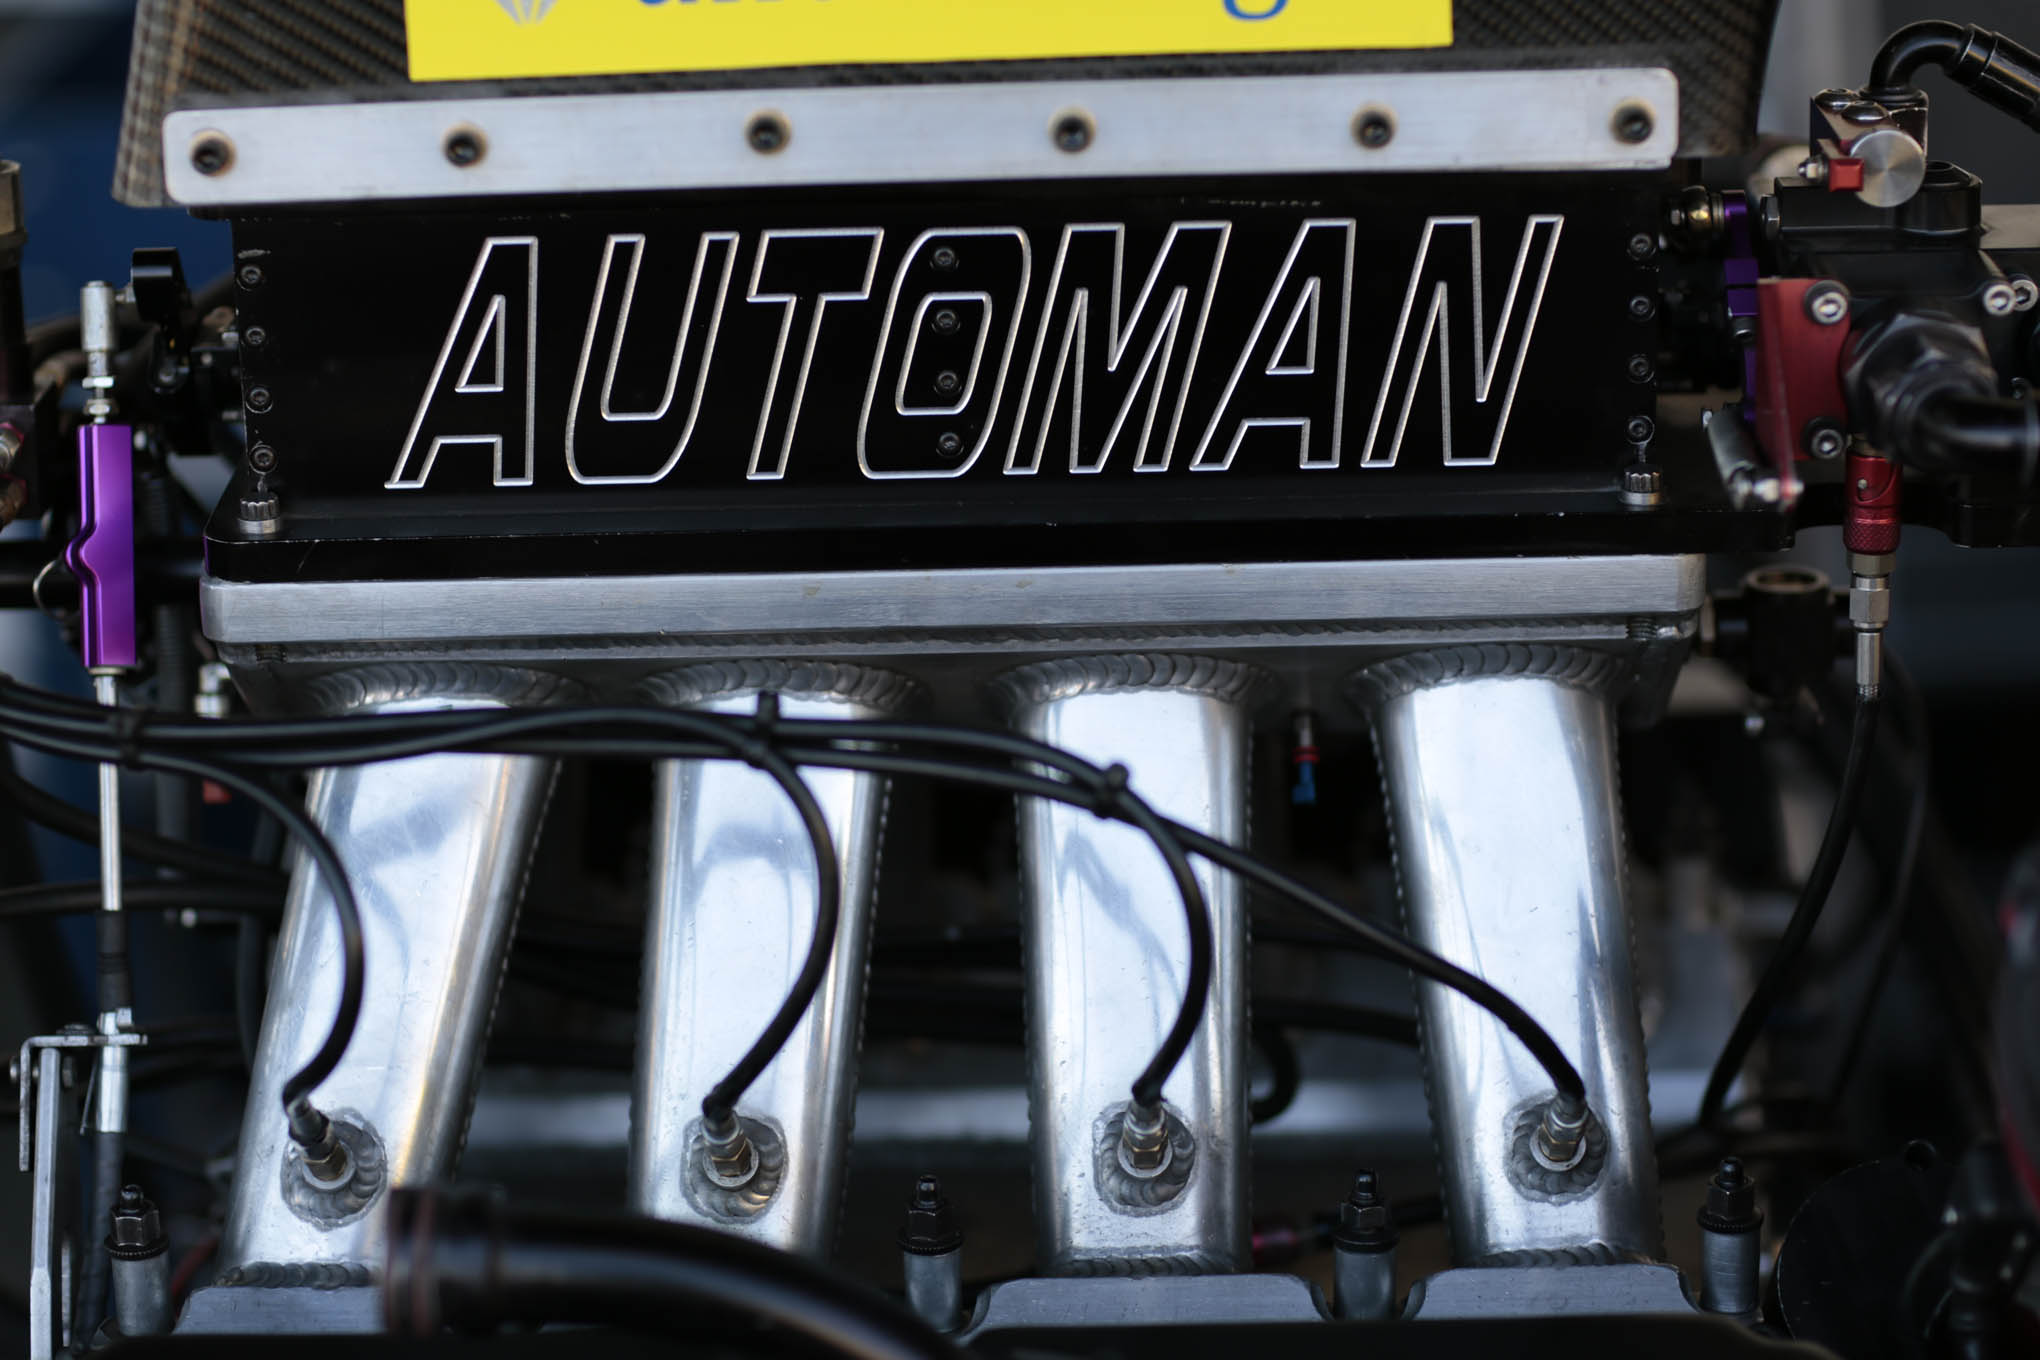 There are two rectangular butterflies in the Automan throttle body.